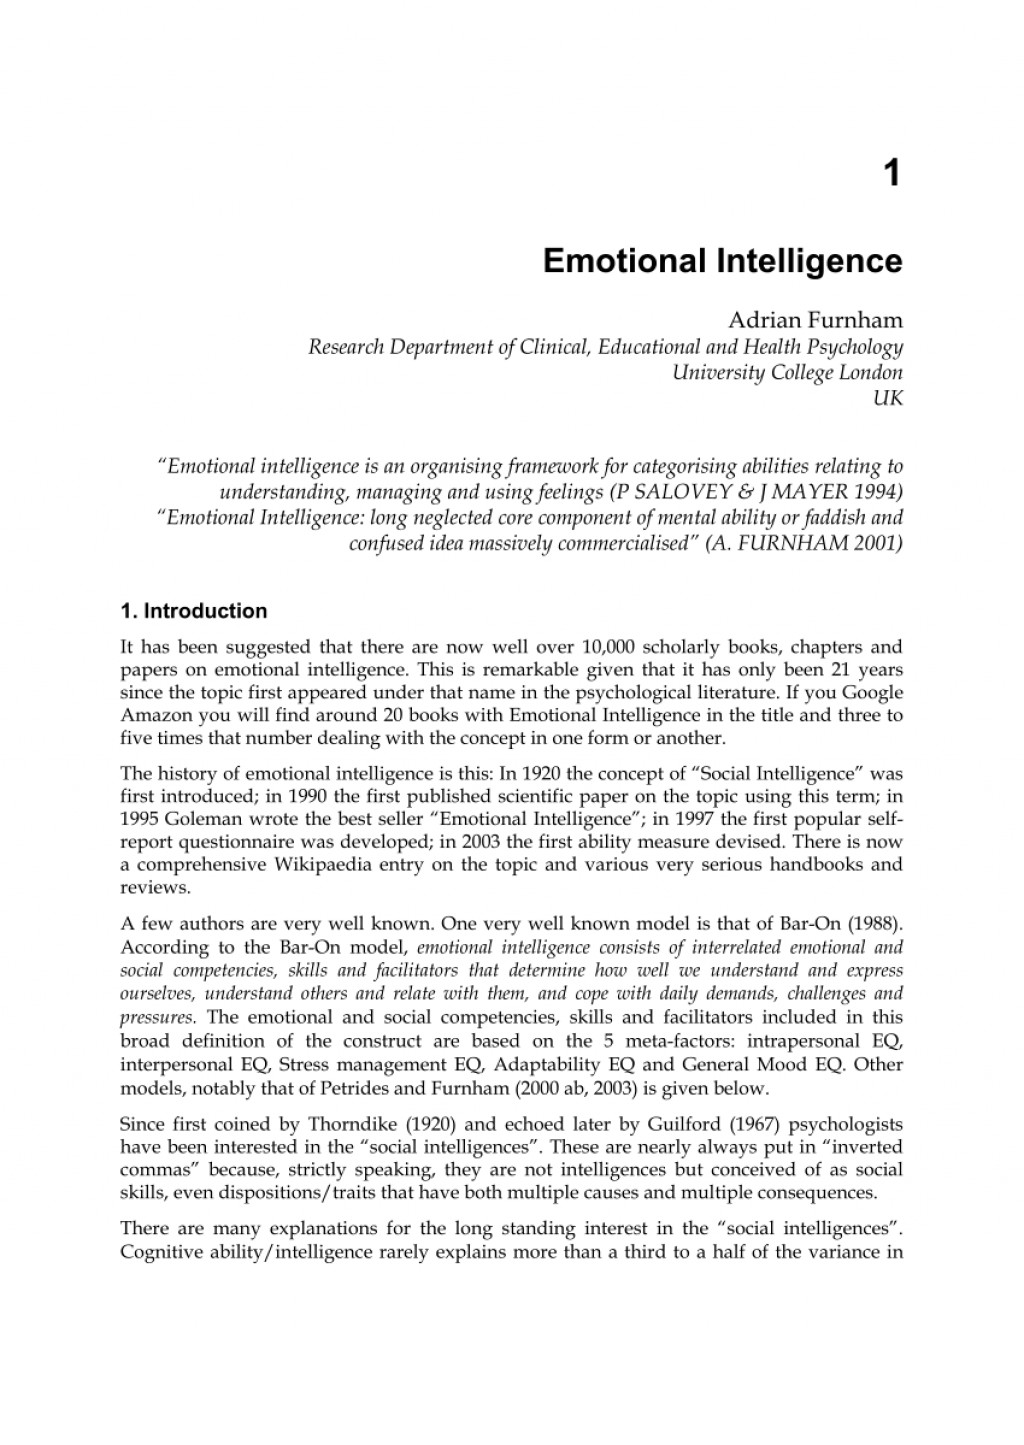 001 Emotional Intelligence Essay Largepreview Fantastic Topics Free Conclusion Large